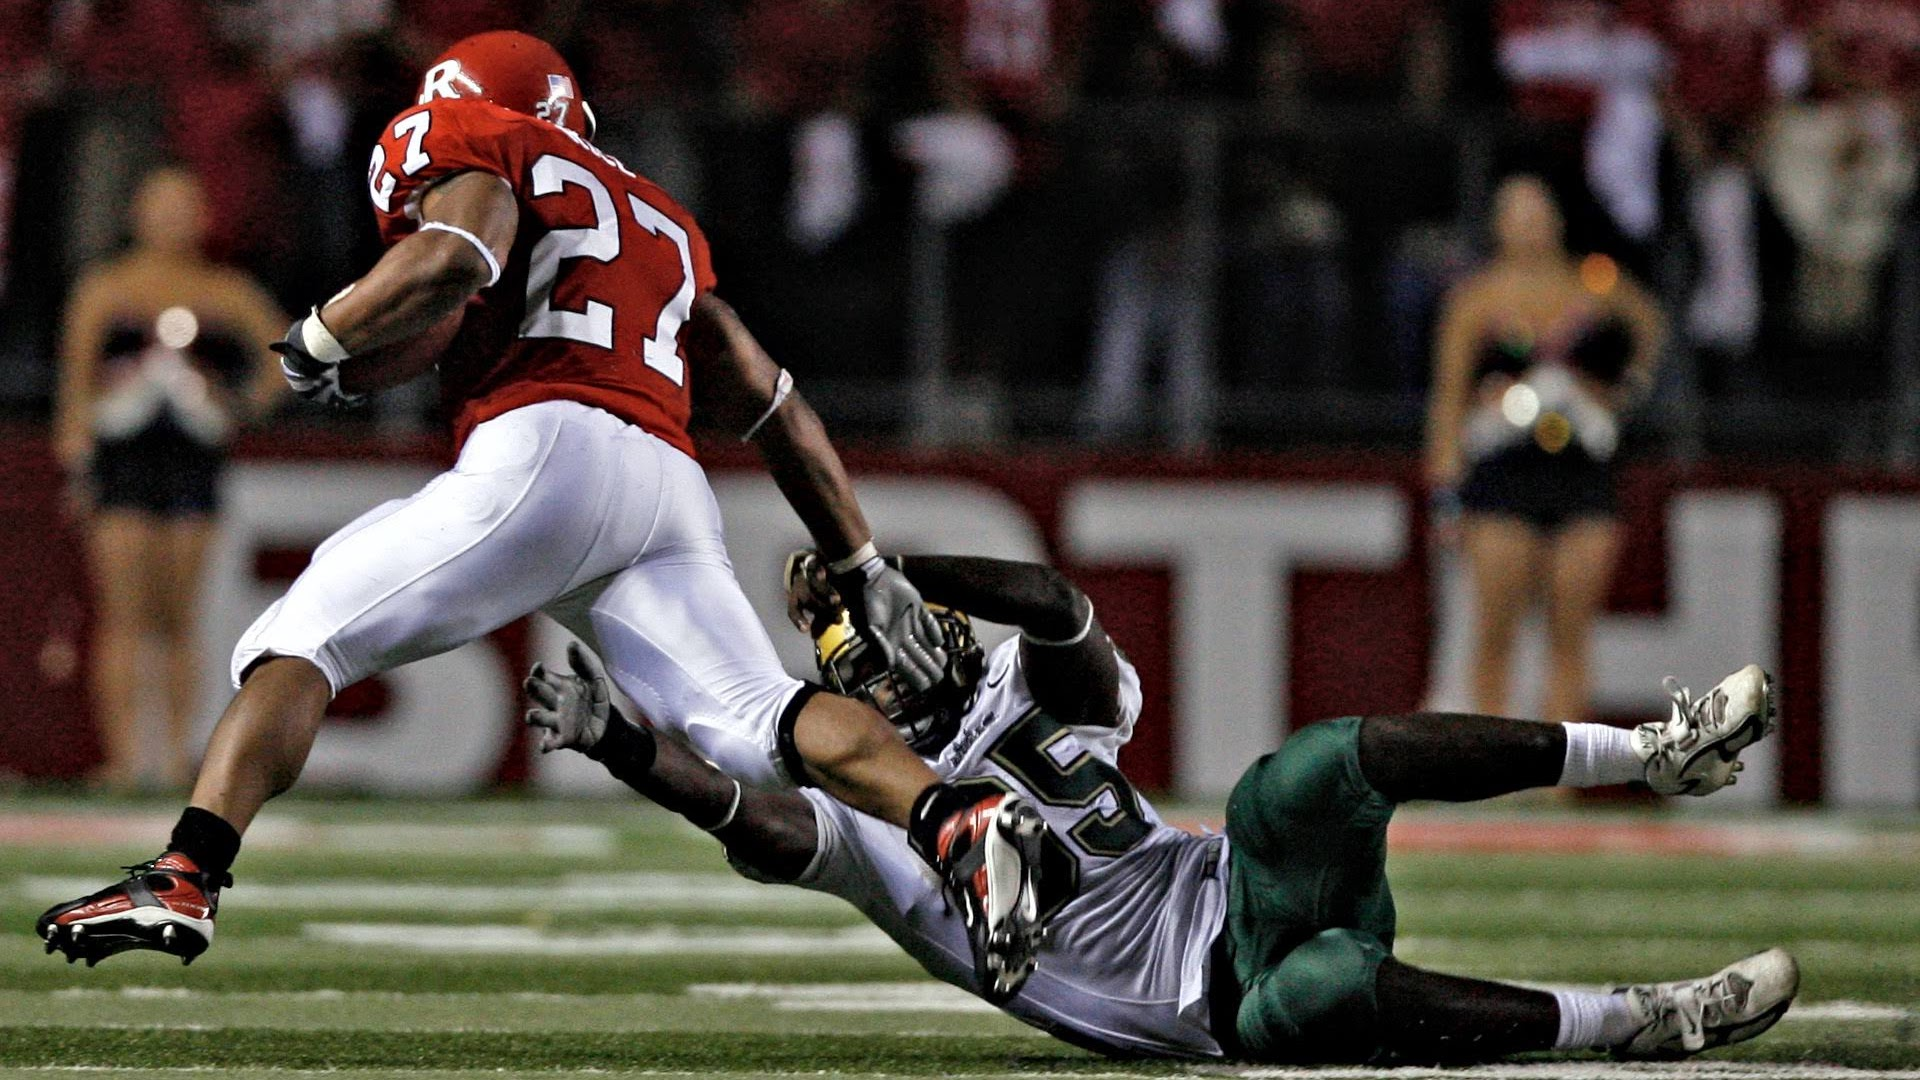 A week after the Bulls beat West Virginia, Rutgers running back Ray Rice (27) stiffed-arms USF defensive end George Selvie and the team's hopes of contending for a national title. (Times, 2007)